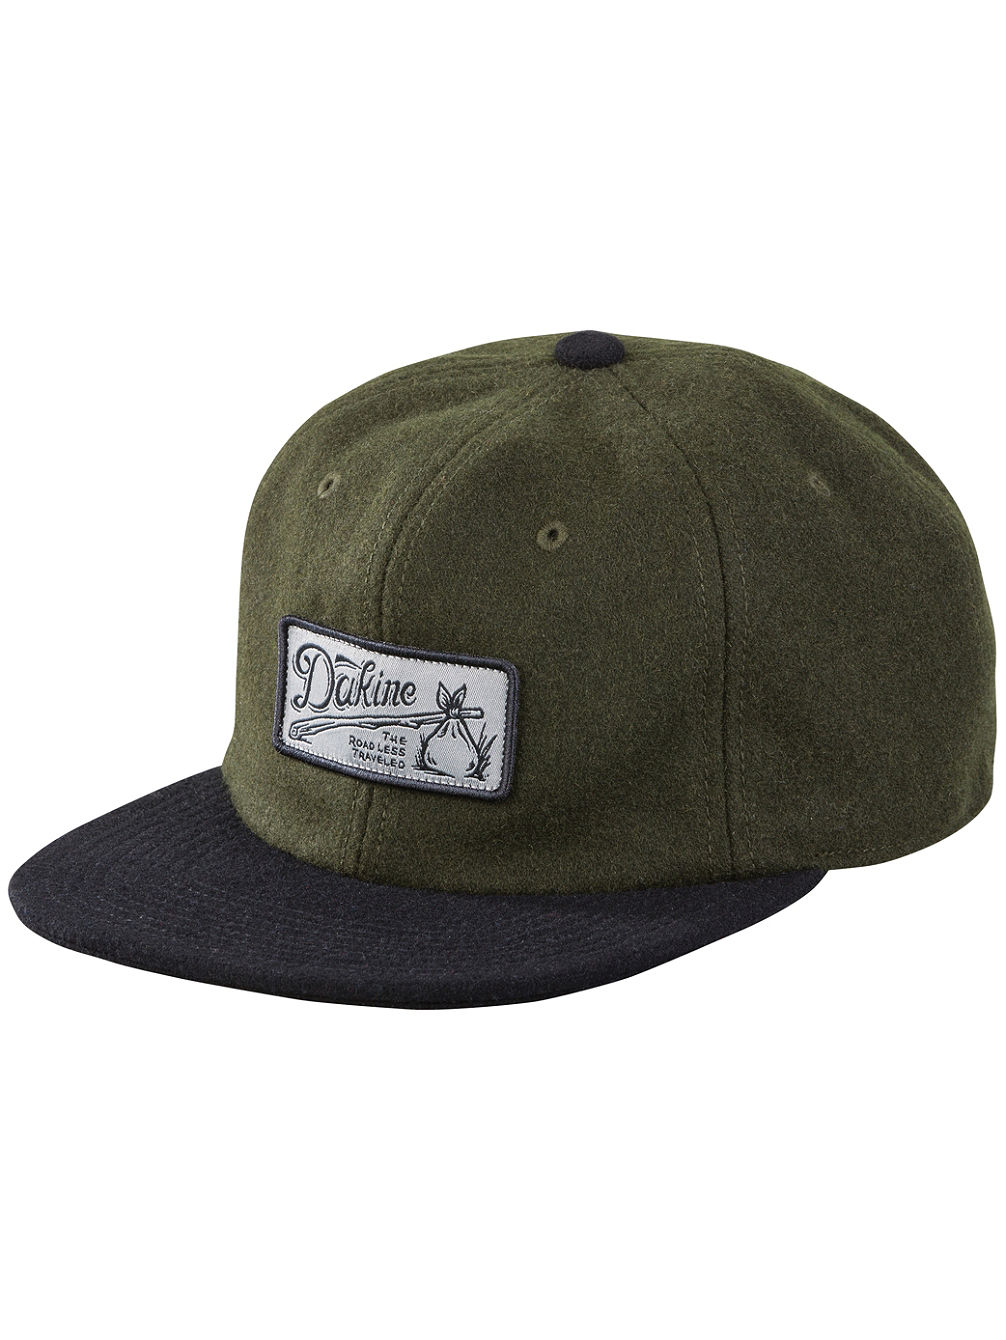 2808362656b2a Buy Dakine Vagabond Cap online at Blue Tomato